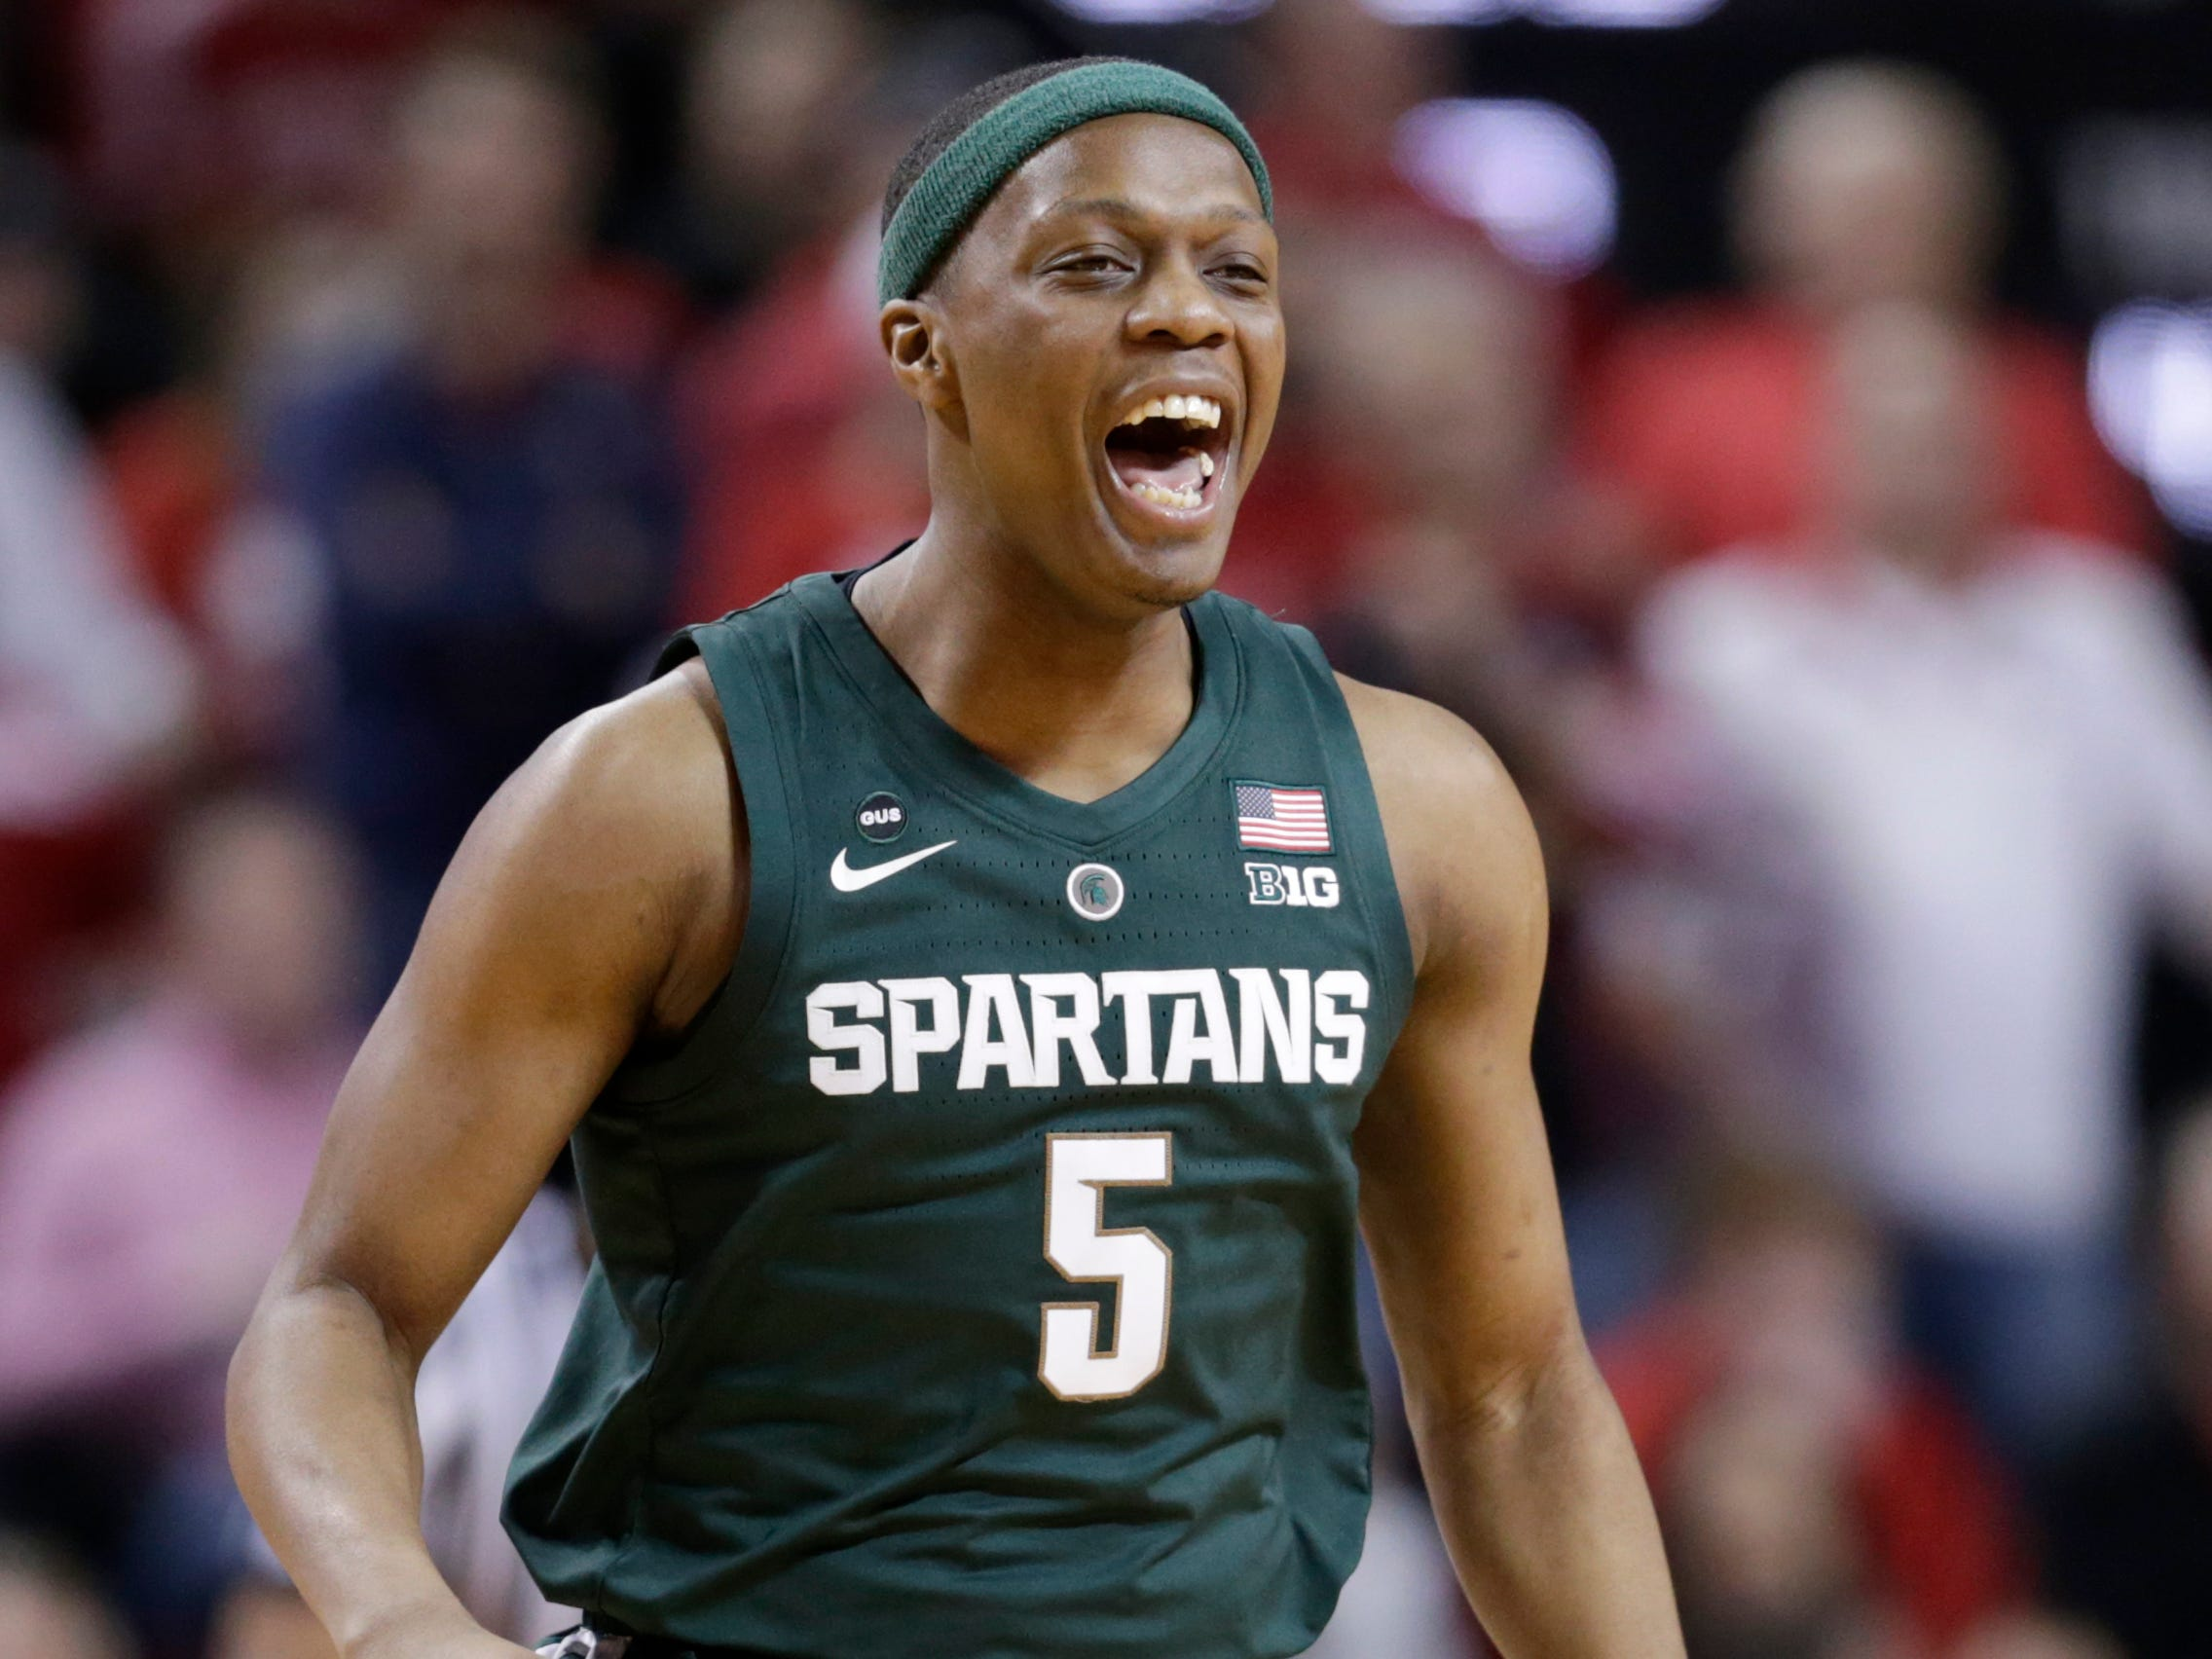 Michigan State's Cassius Winston (5) reacts after scoring a 3-point shot during the first half.